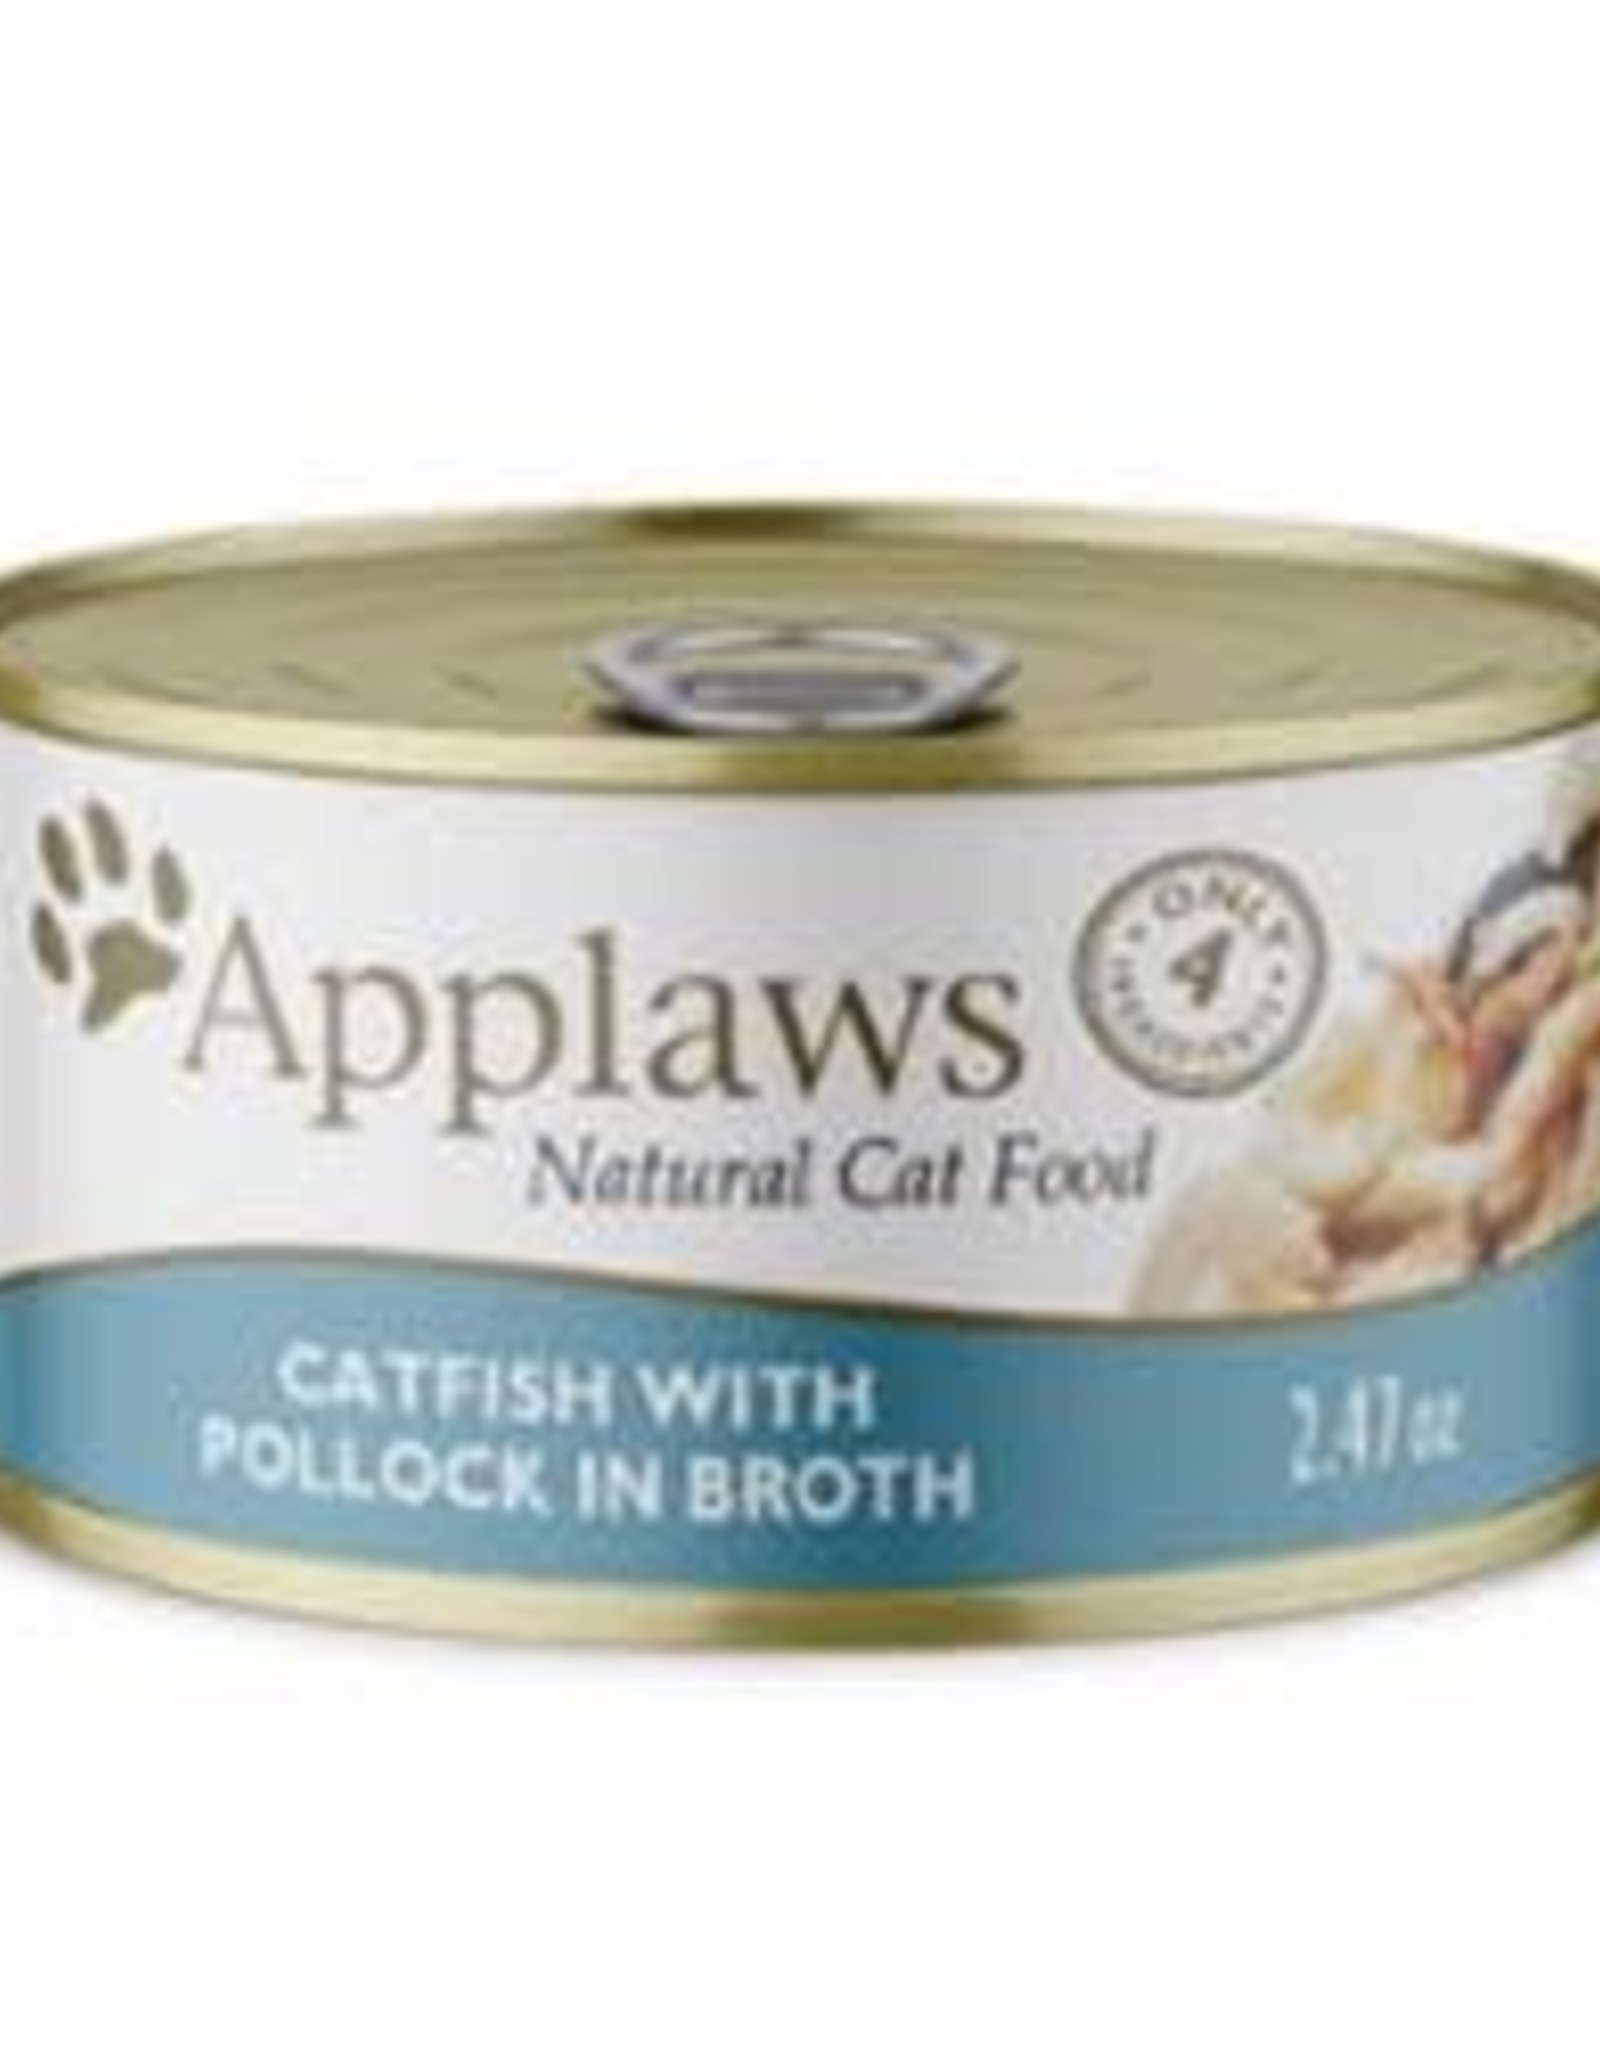 Applaws Applaws Catfish With Pollock 2.47oz